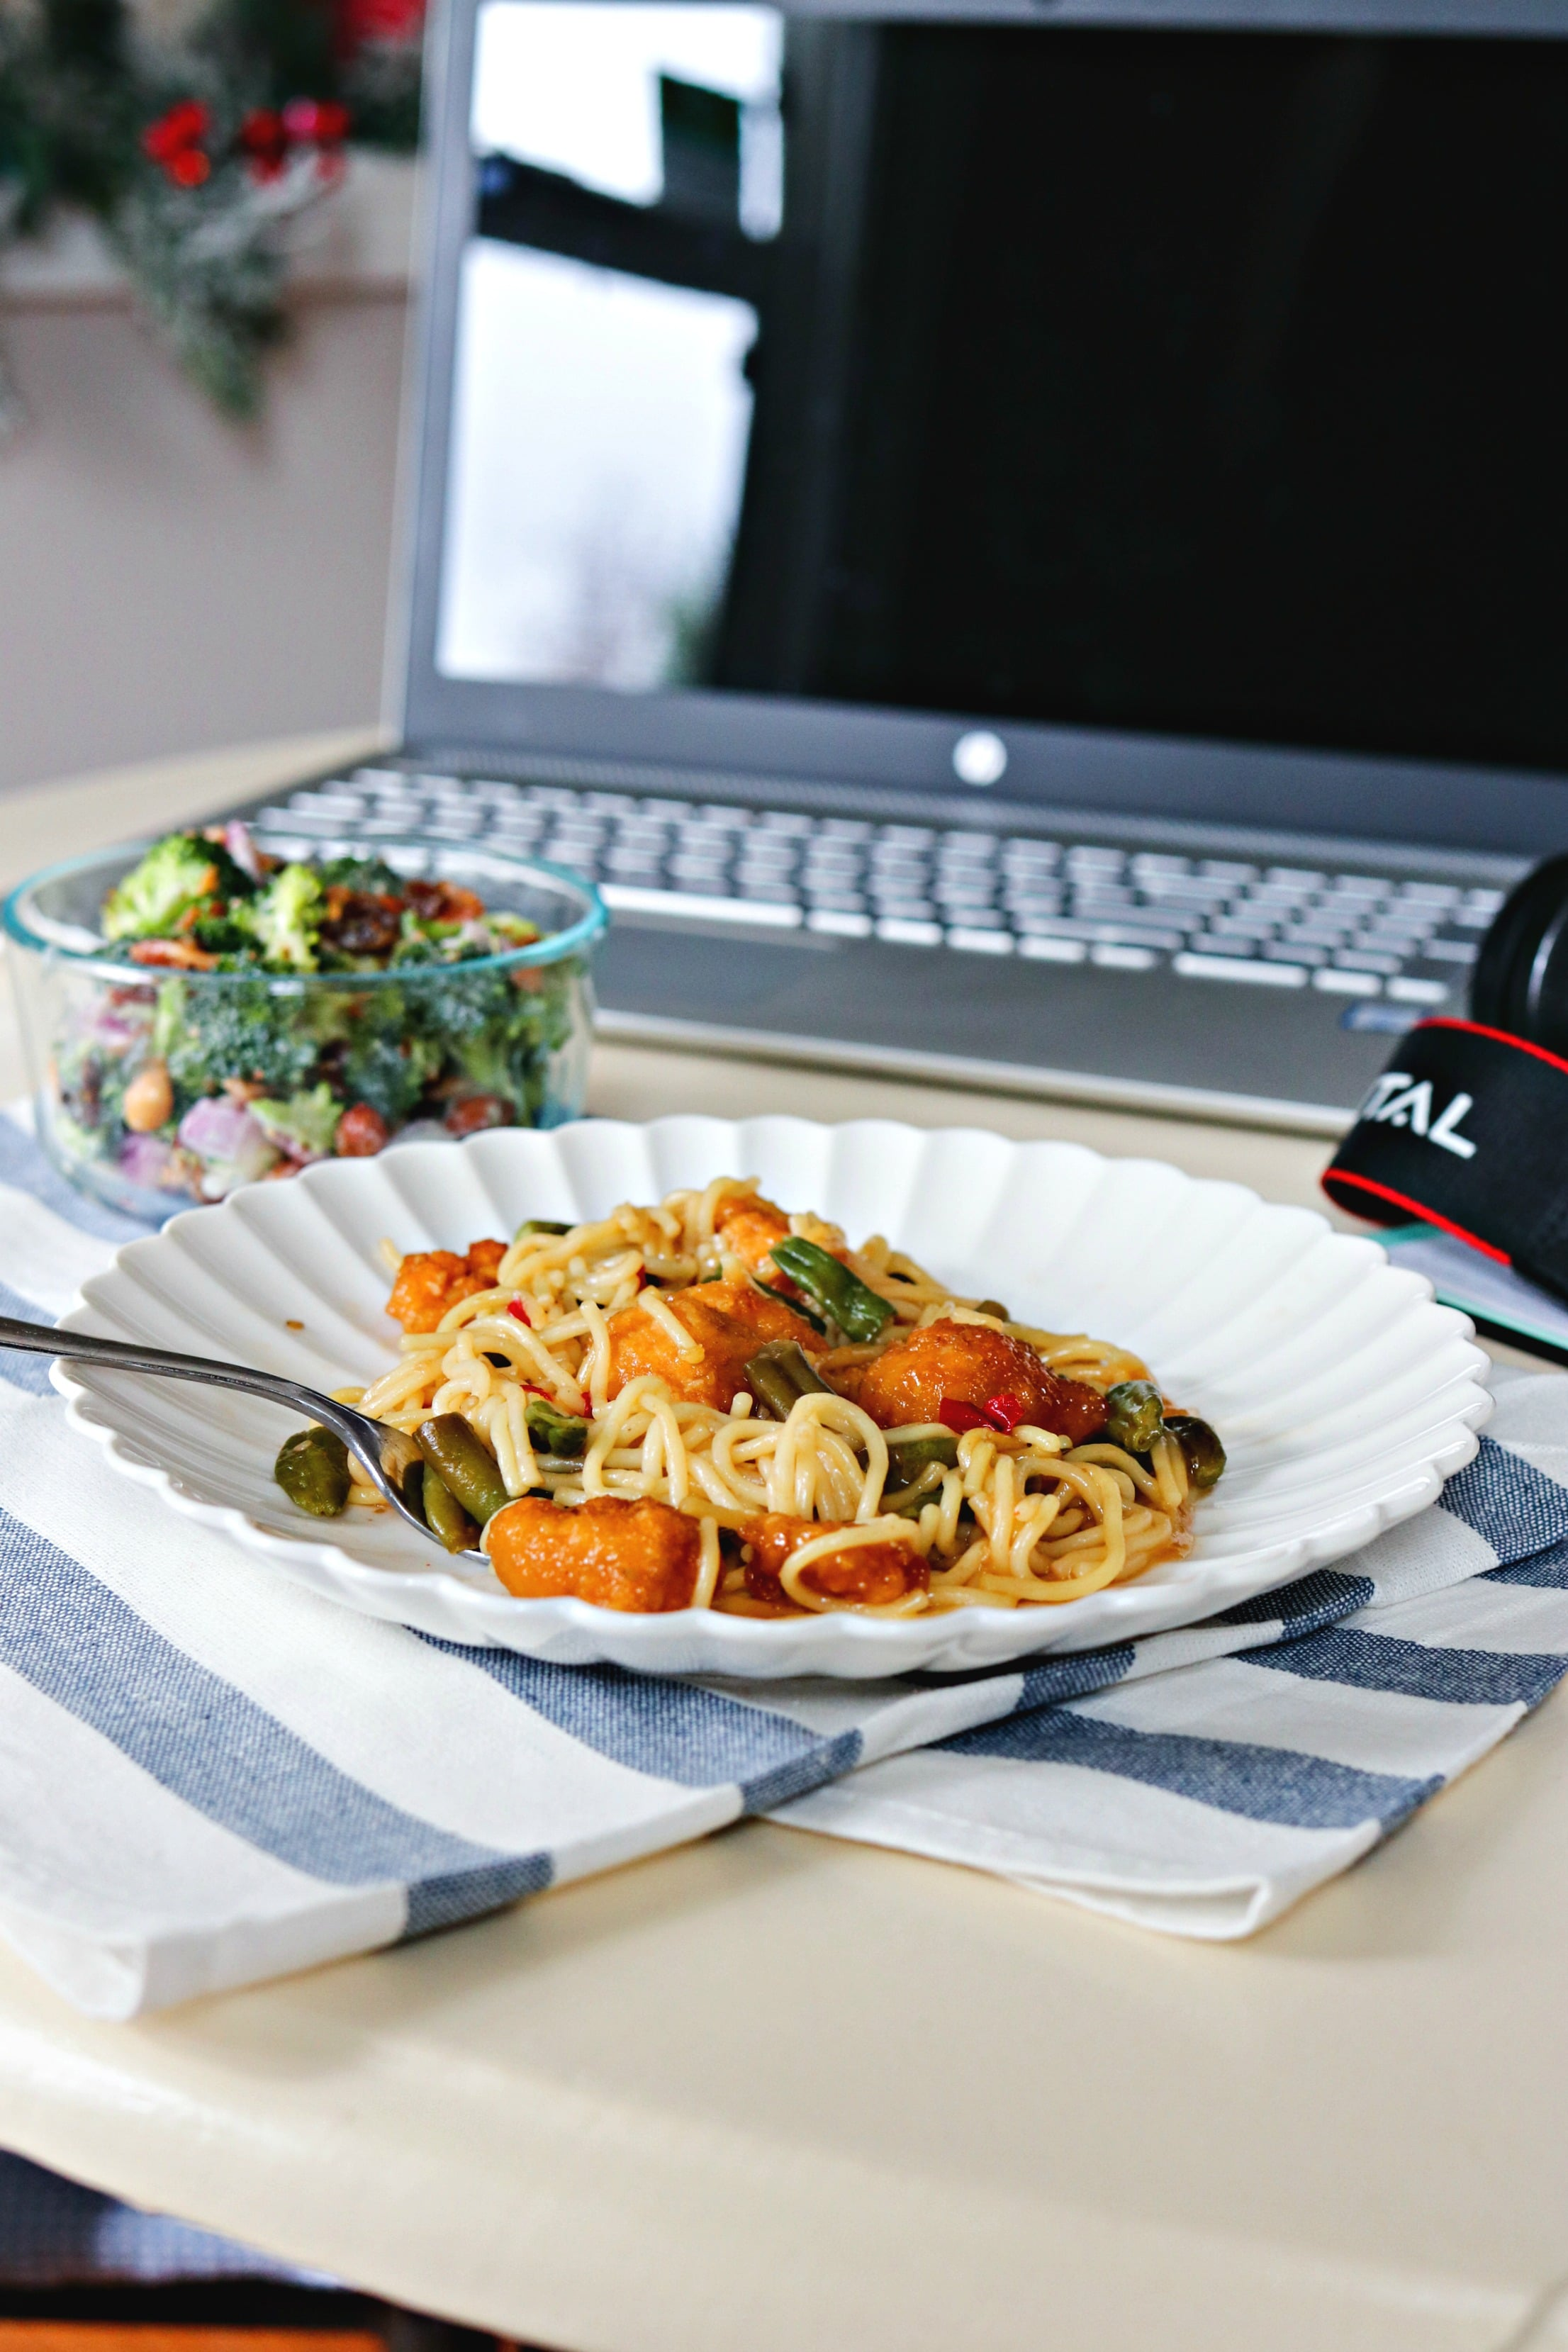 Lean Cuisine and Fresh Broccoli Salad with Crispy Bacon in front of a laptop